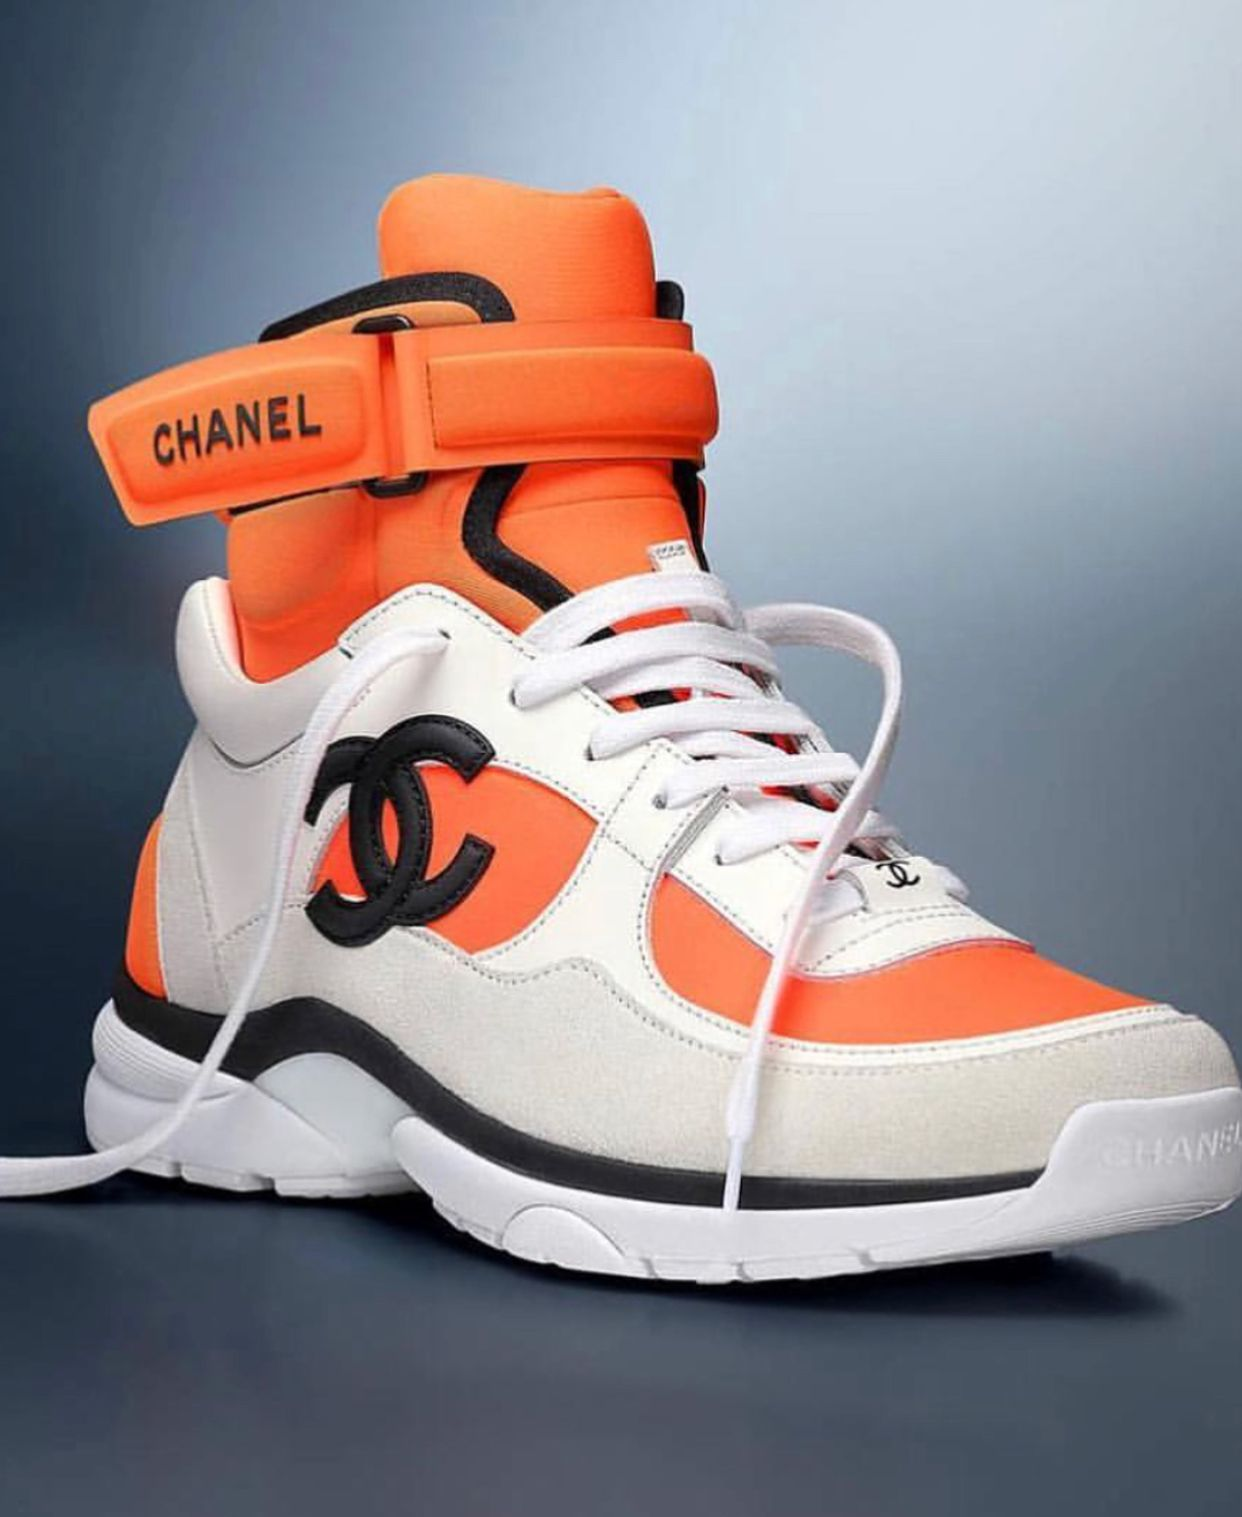 Double C's | Chanel shoes, Sneakers